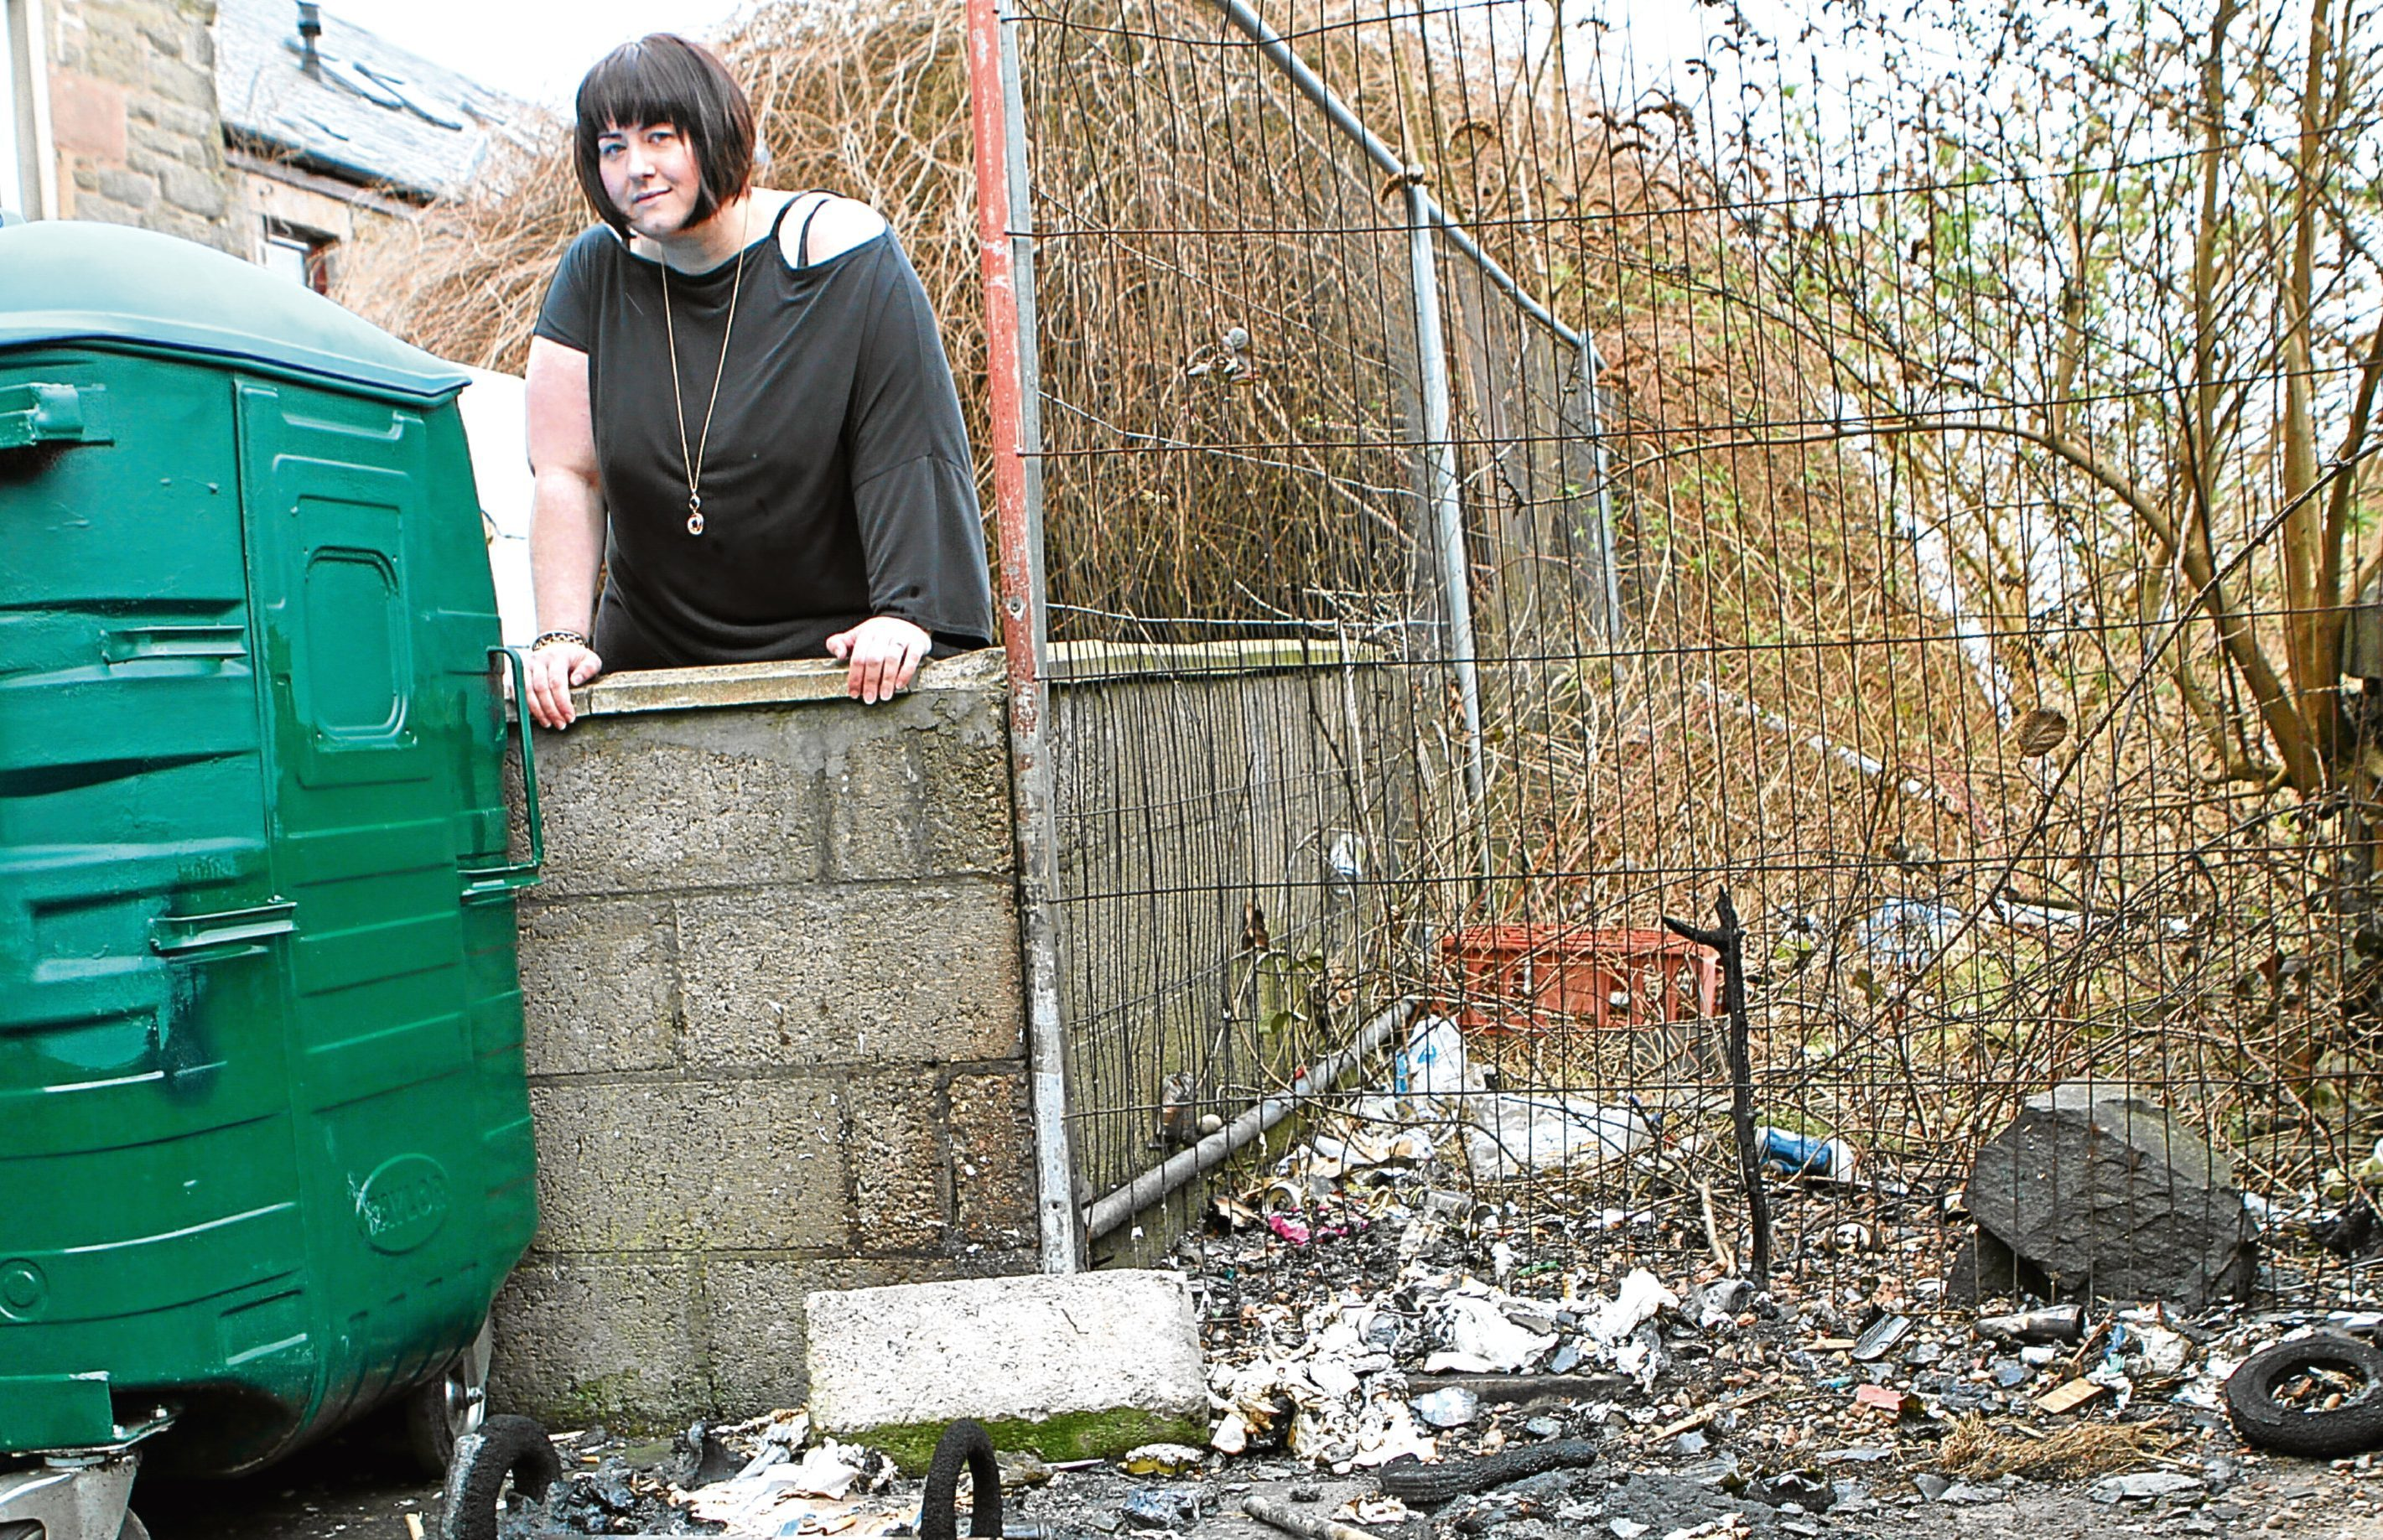 Wendy Sturrock, who owns a business on Dura Street, at the spot where the wheelie bins were set alight